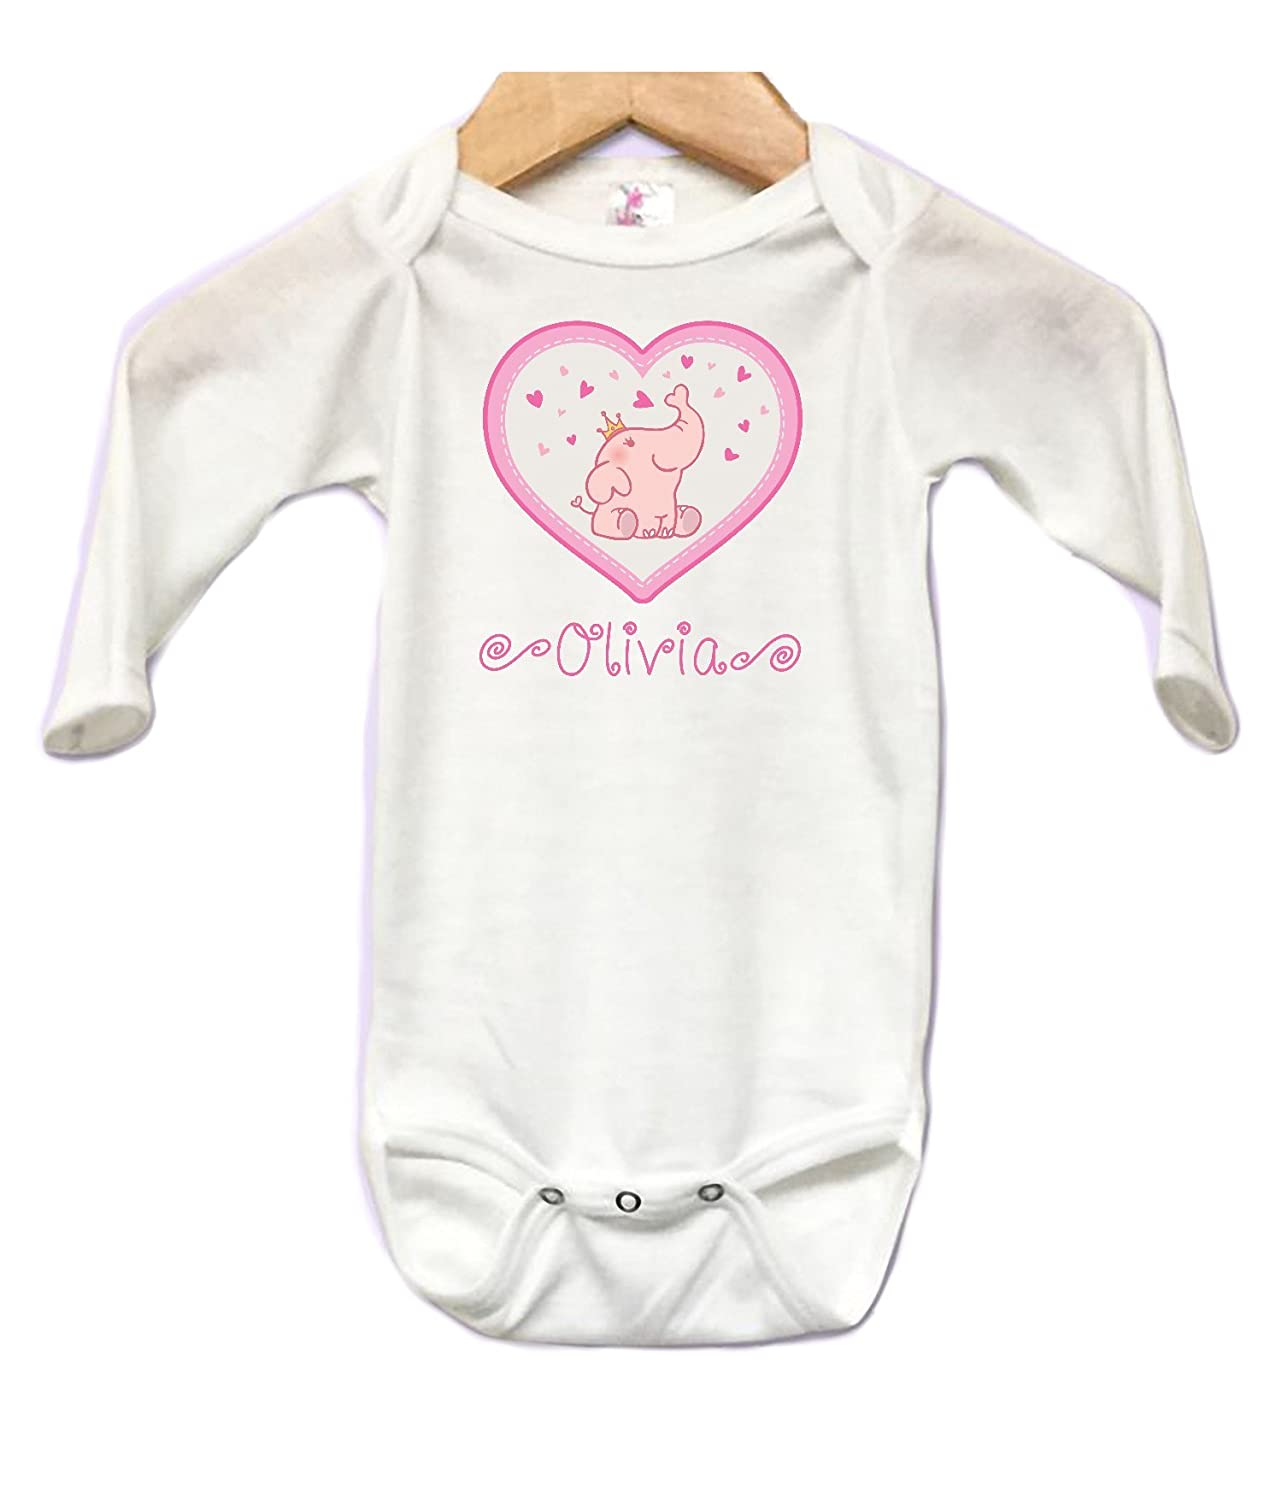 Cute Elephant Hearts Baby Onesie Bodysuit Long Sleeve Cute Personalized Custom Name 0 to 3 mos or 3 to 6 months for Girls